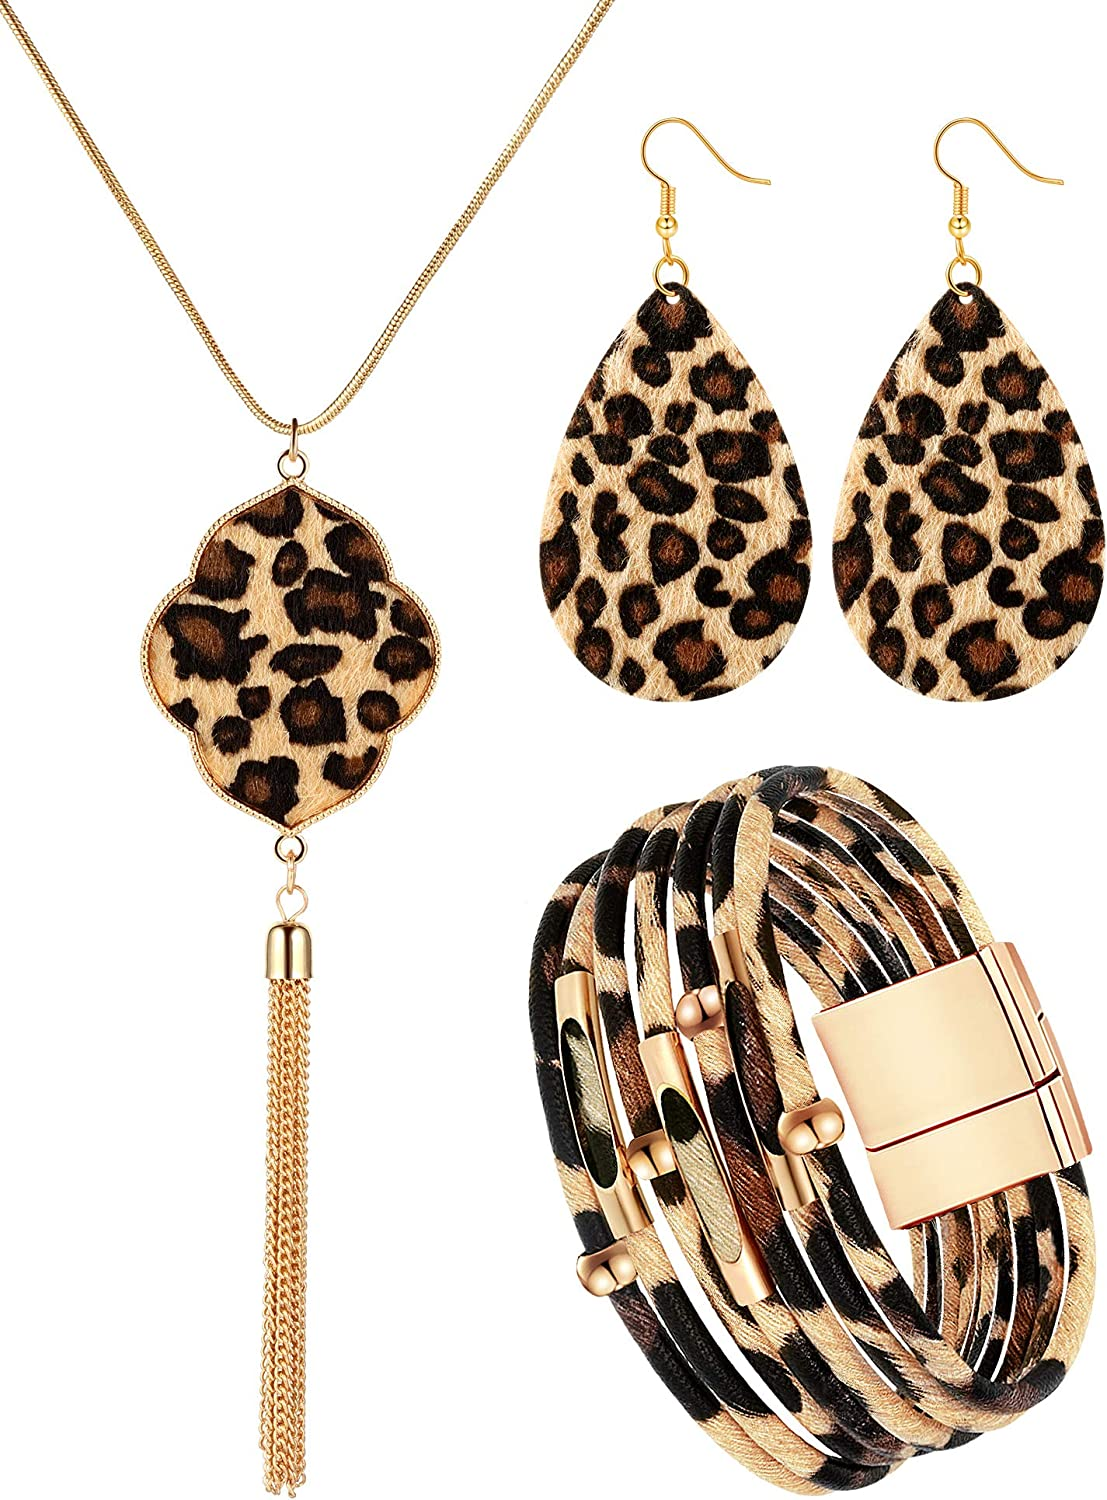 Hicarer 3 Pieces Bracelets Bohemia Earrings Necklace Leopard Jewelry Set Multilayer Leather Cuff Bracelet Boho for Women Girls Cosplay Party Supplies Costume Accessories